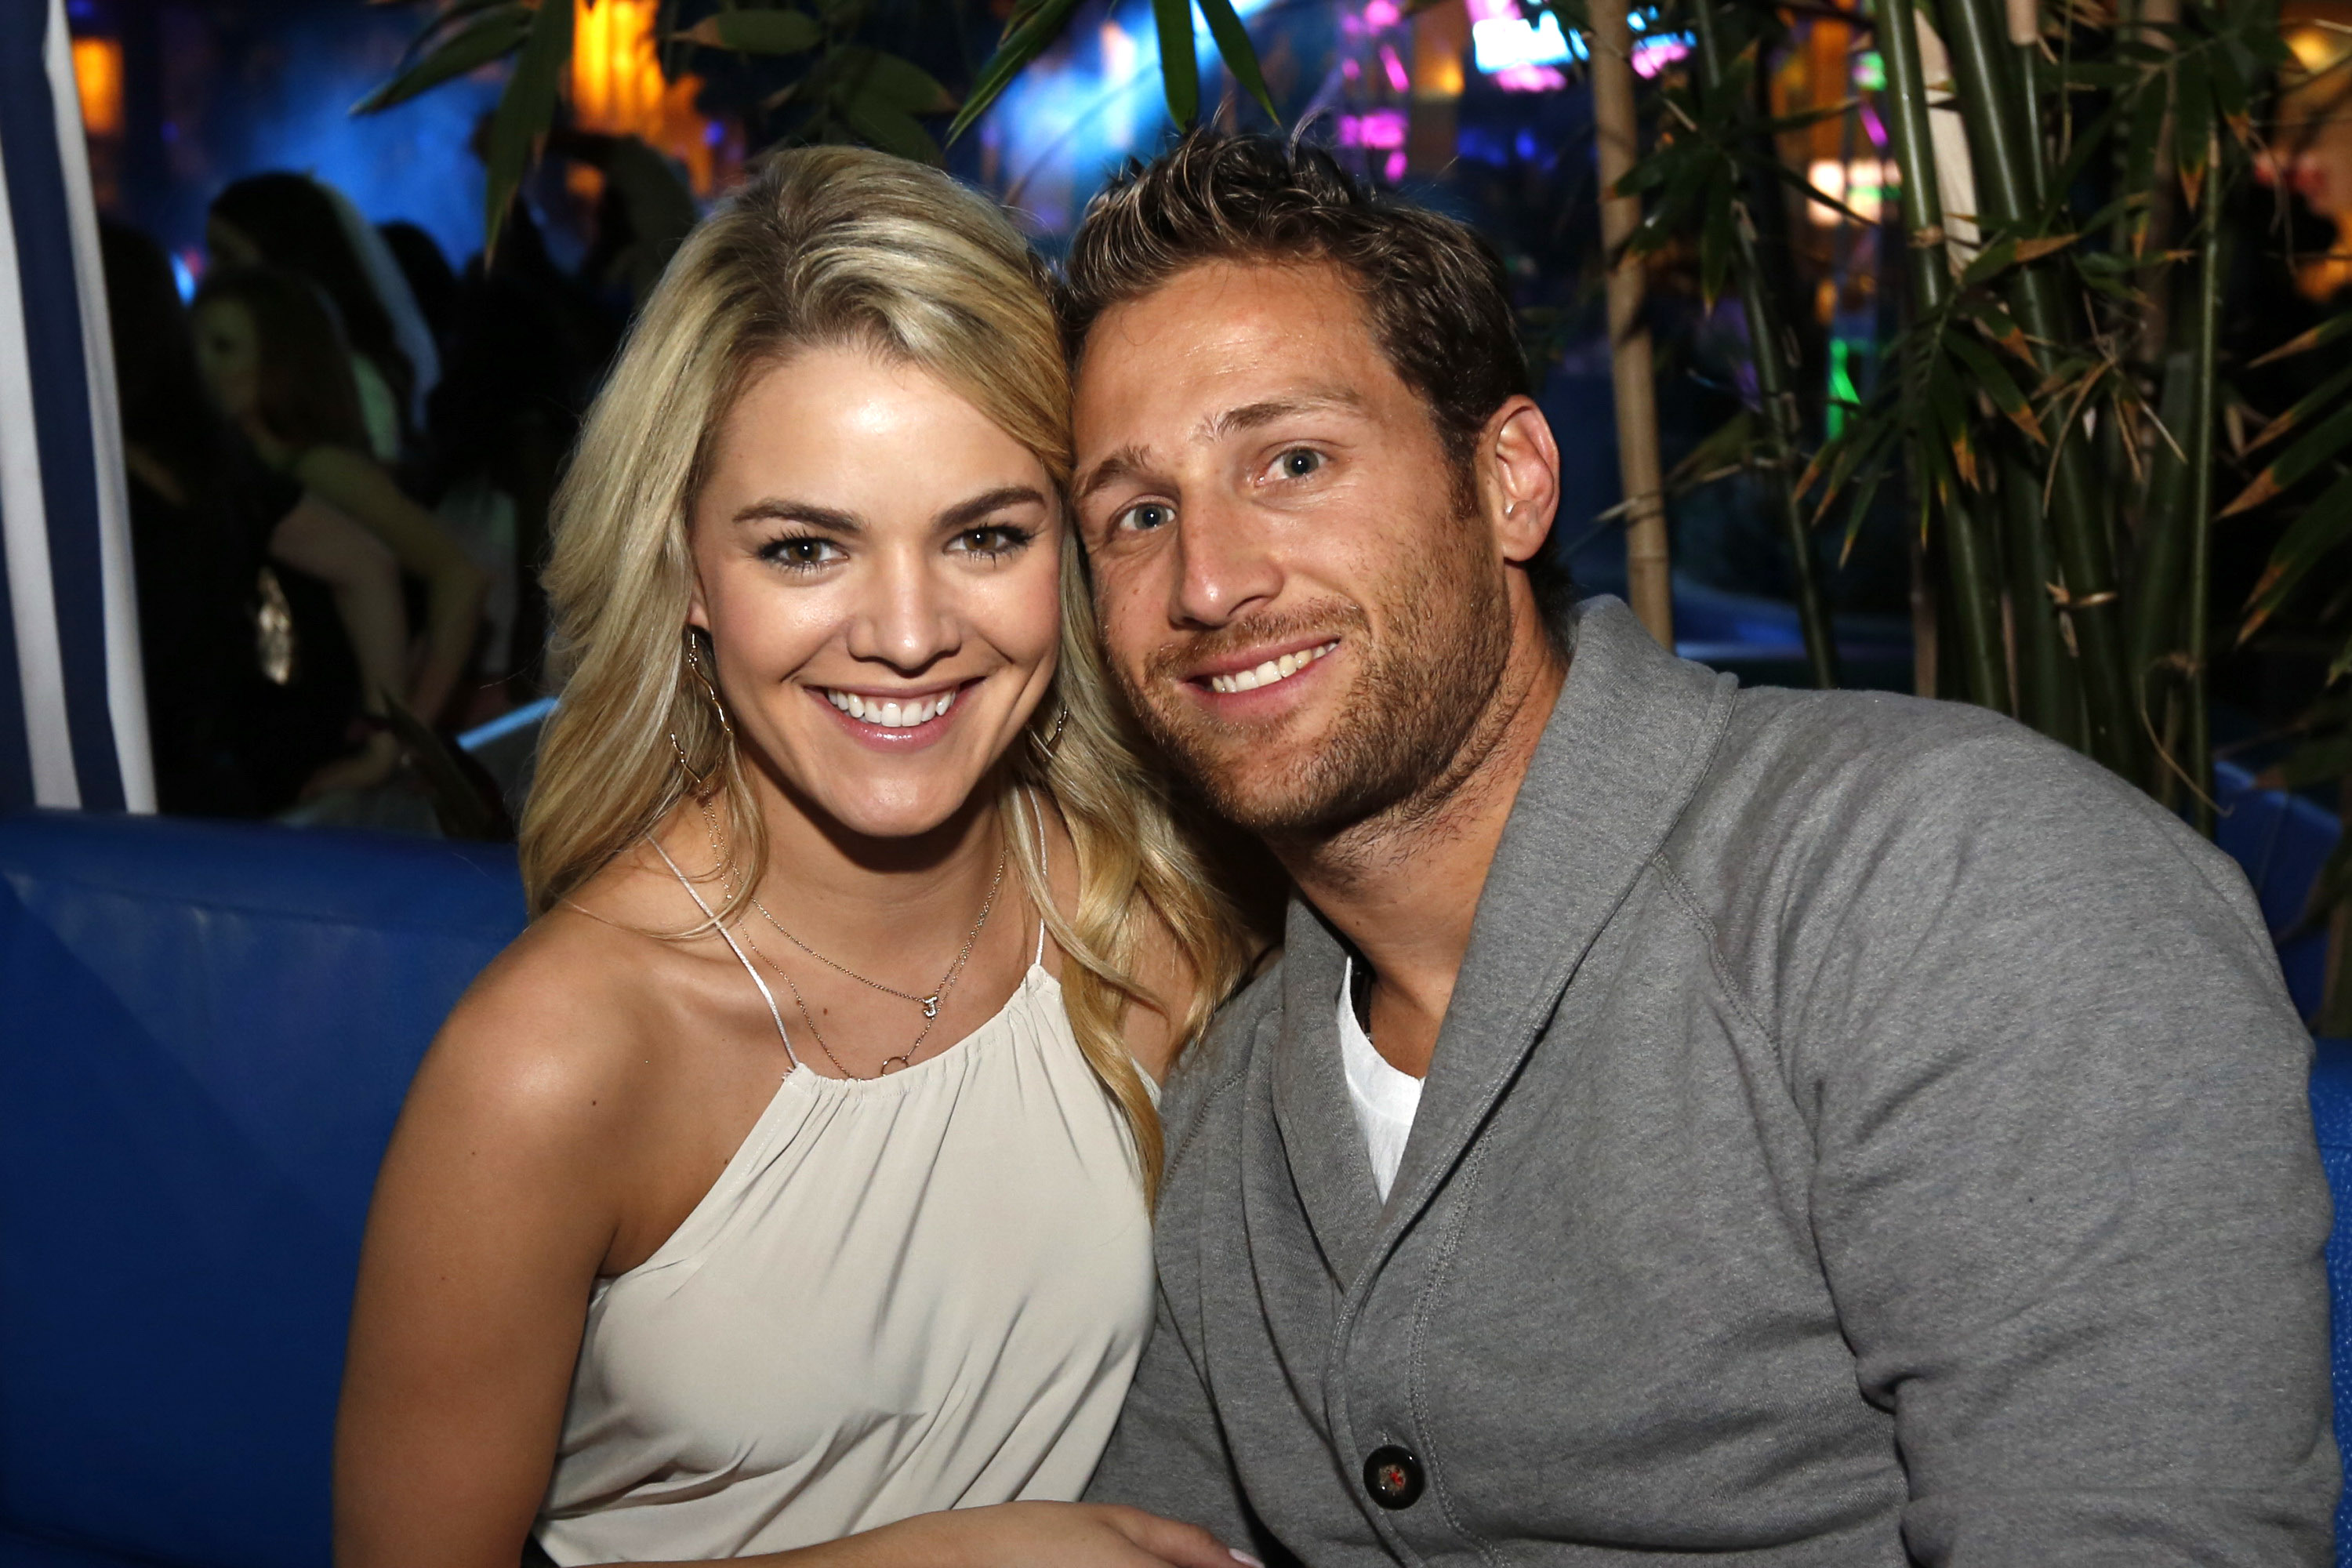 Juan Pablo Galavis and girlfriend Nikki Ferrell from the ABC reality show The Bachelor host The Pool After Dark at Harrah's Resort on March 29, 2014 in Atlantic City.